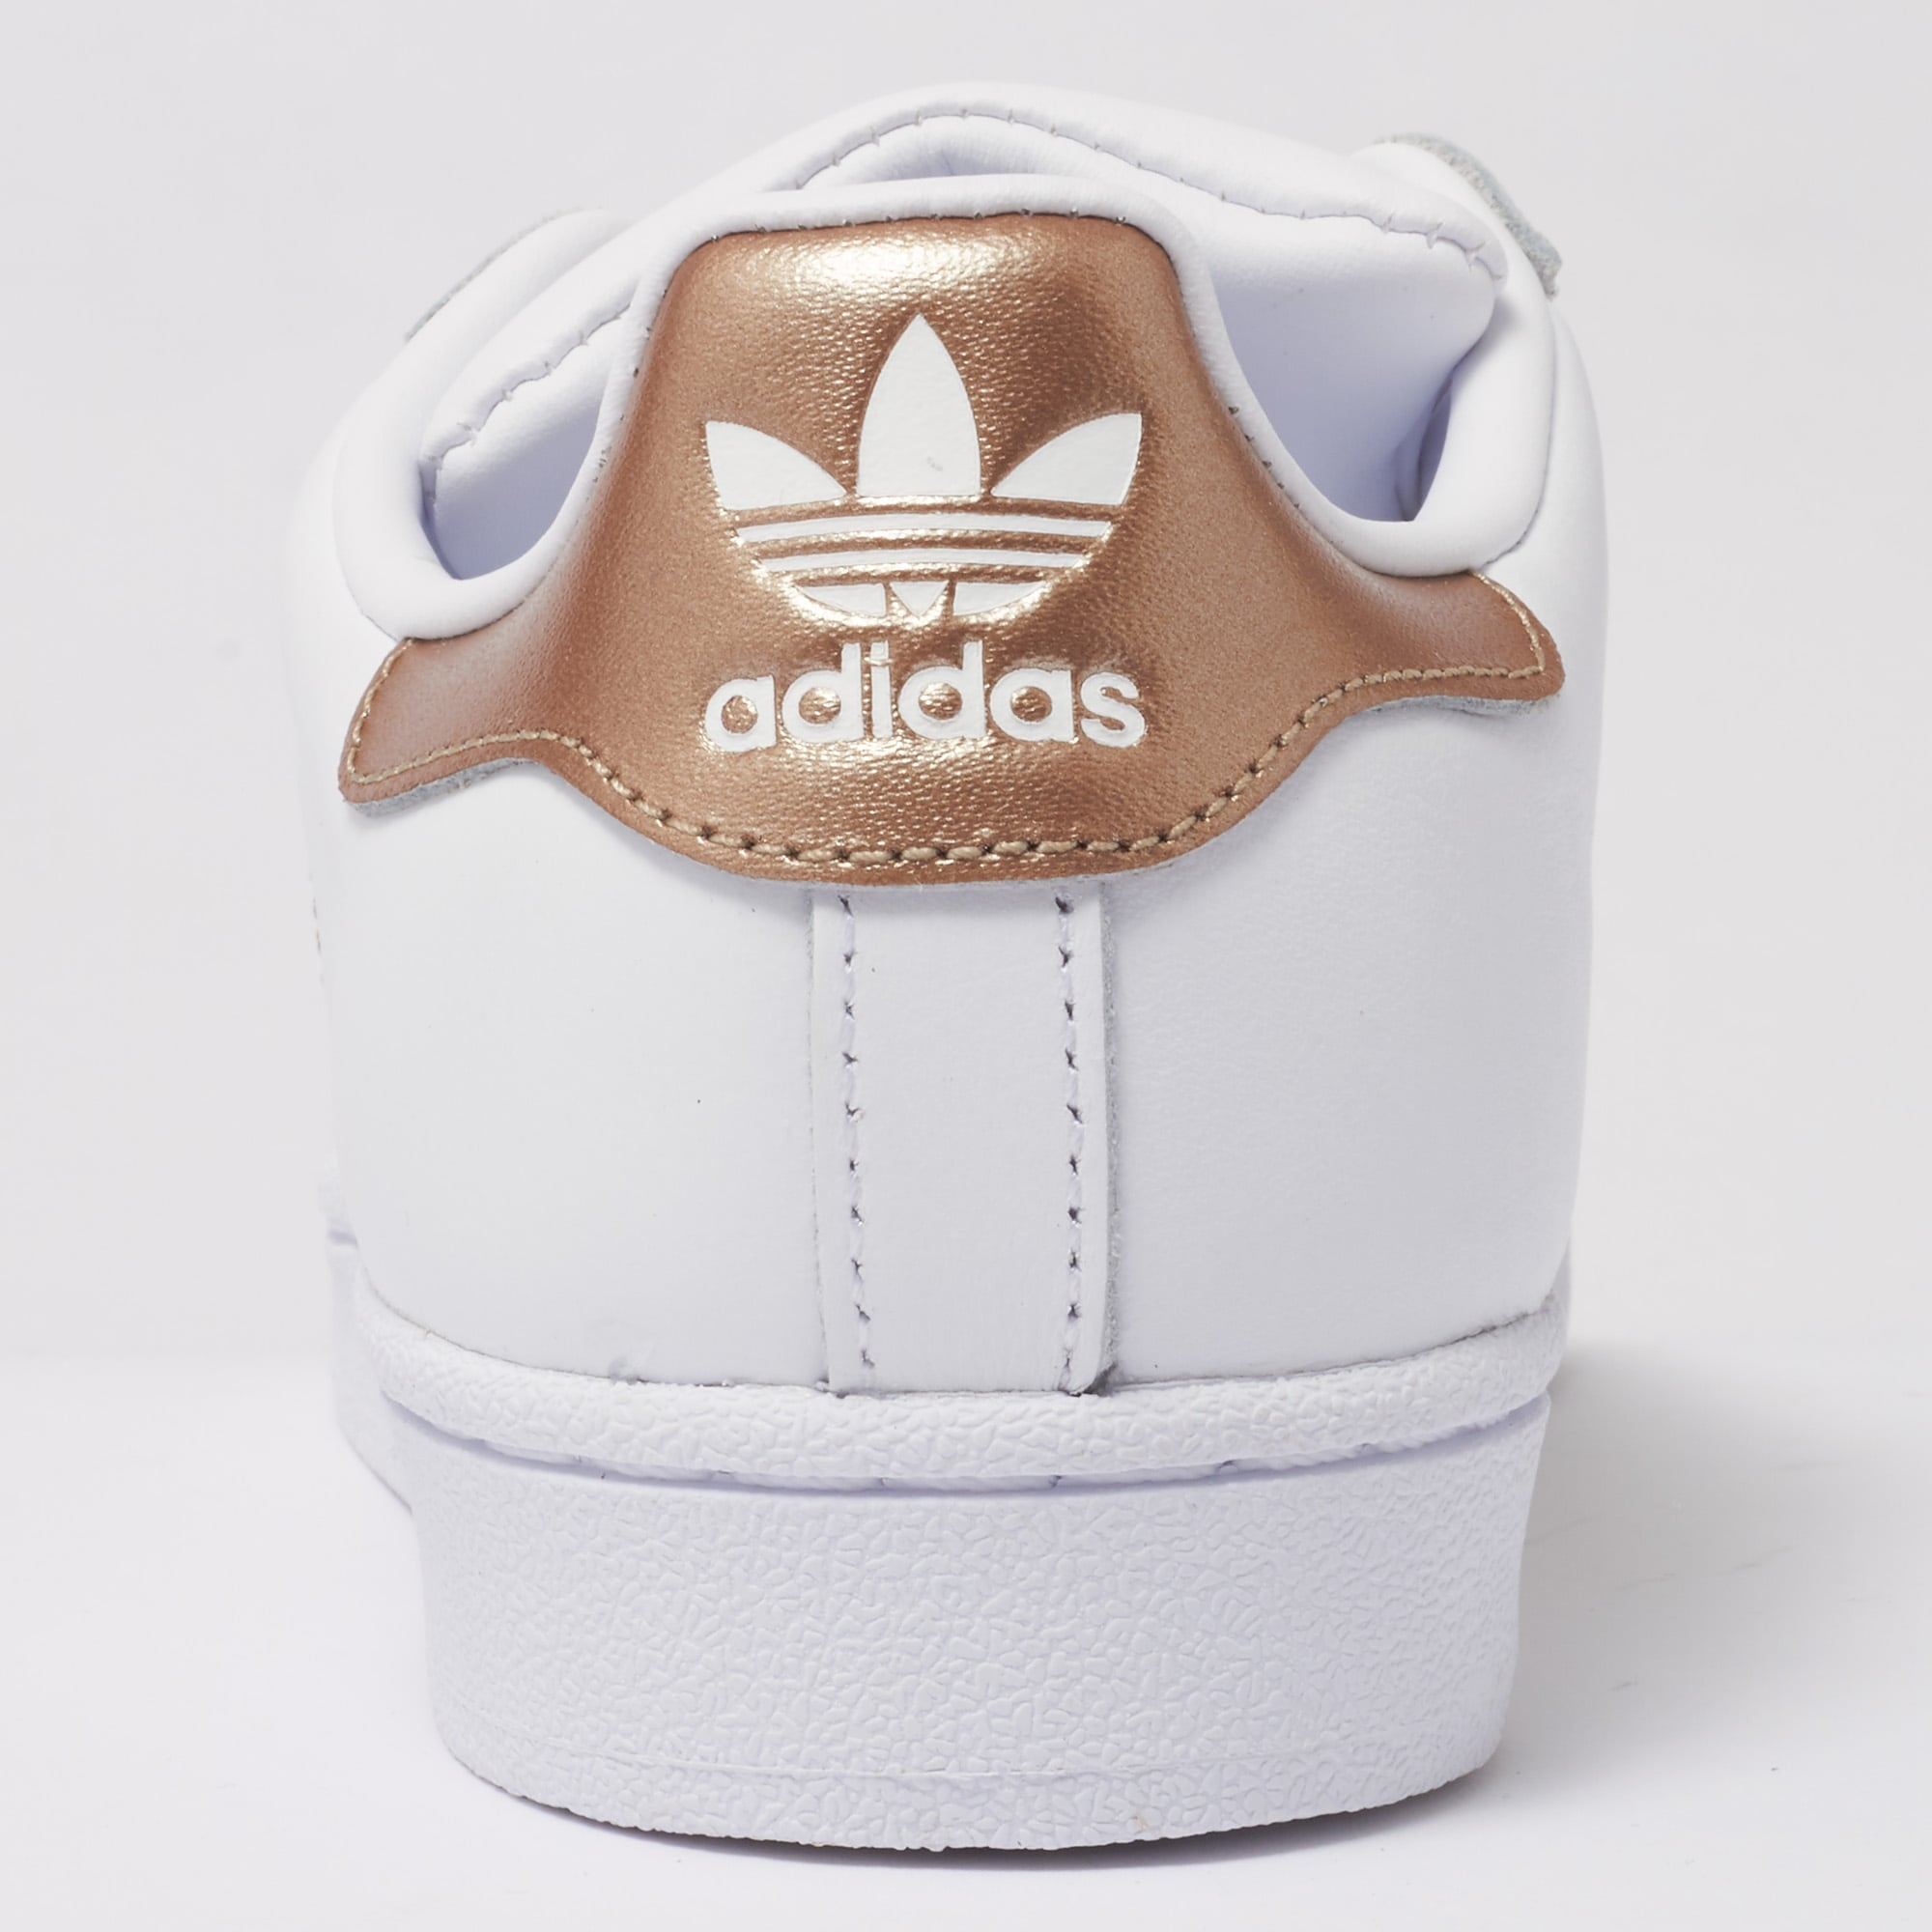 adidas Women's Superstar Trainers Shoes